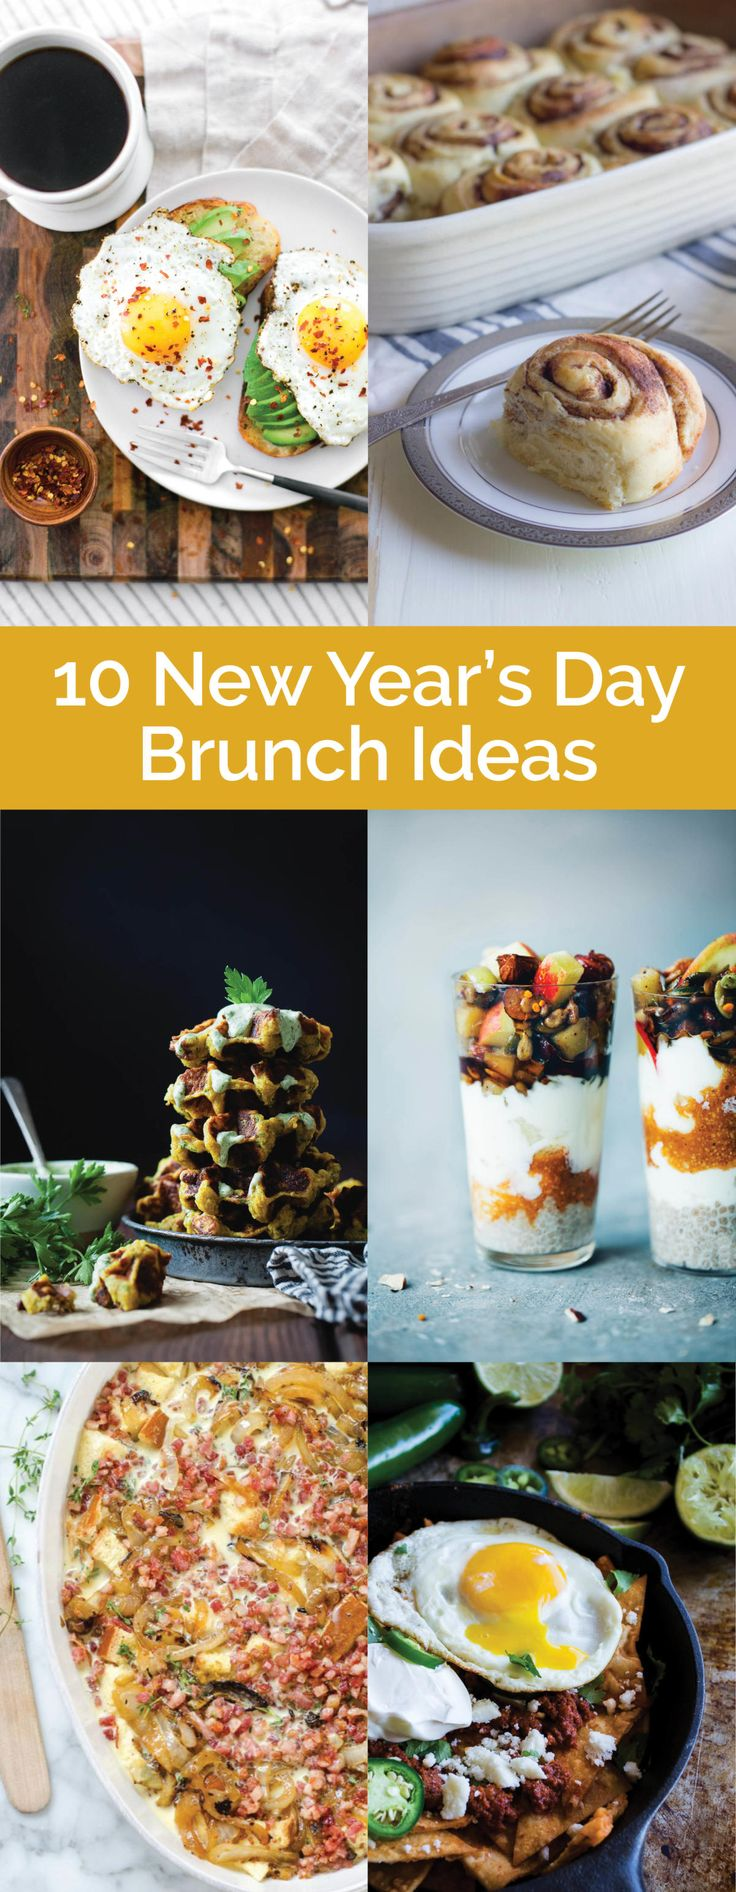 10 New Year's Day Brunch Ideas Delicious, yummy and make ahead brunch recipes for the day after NYE. Avocado Toasts, Chia Parfaits, Waffles, Cinnamon Rolls and more!